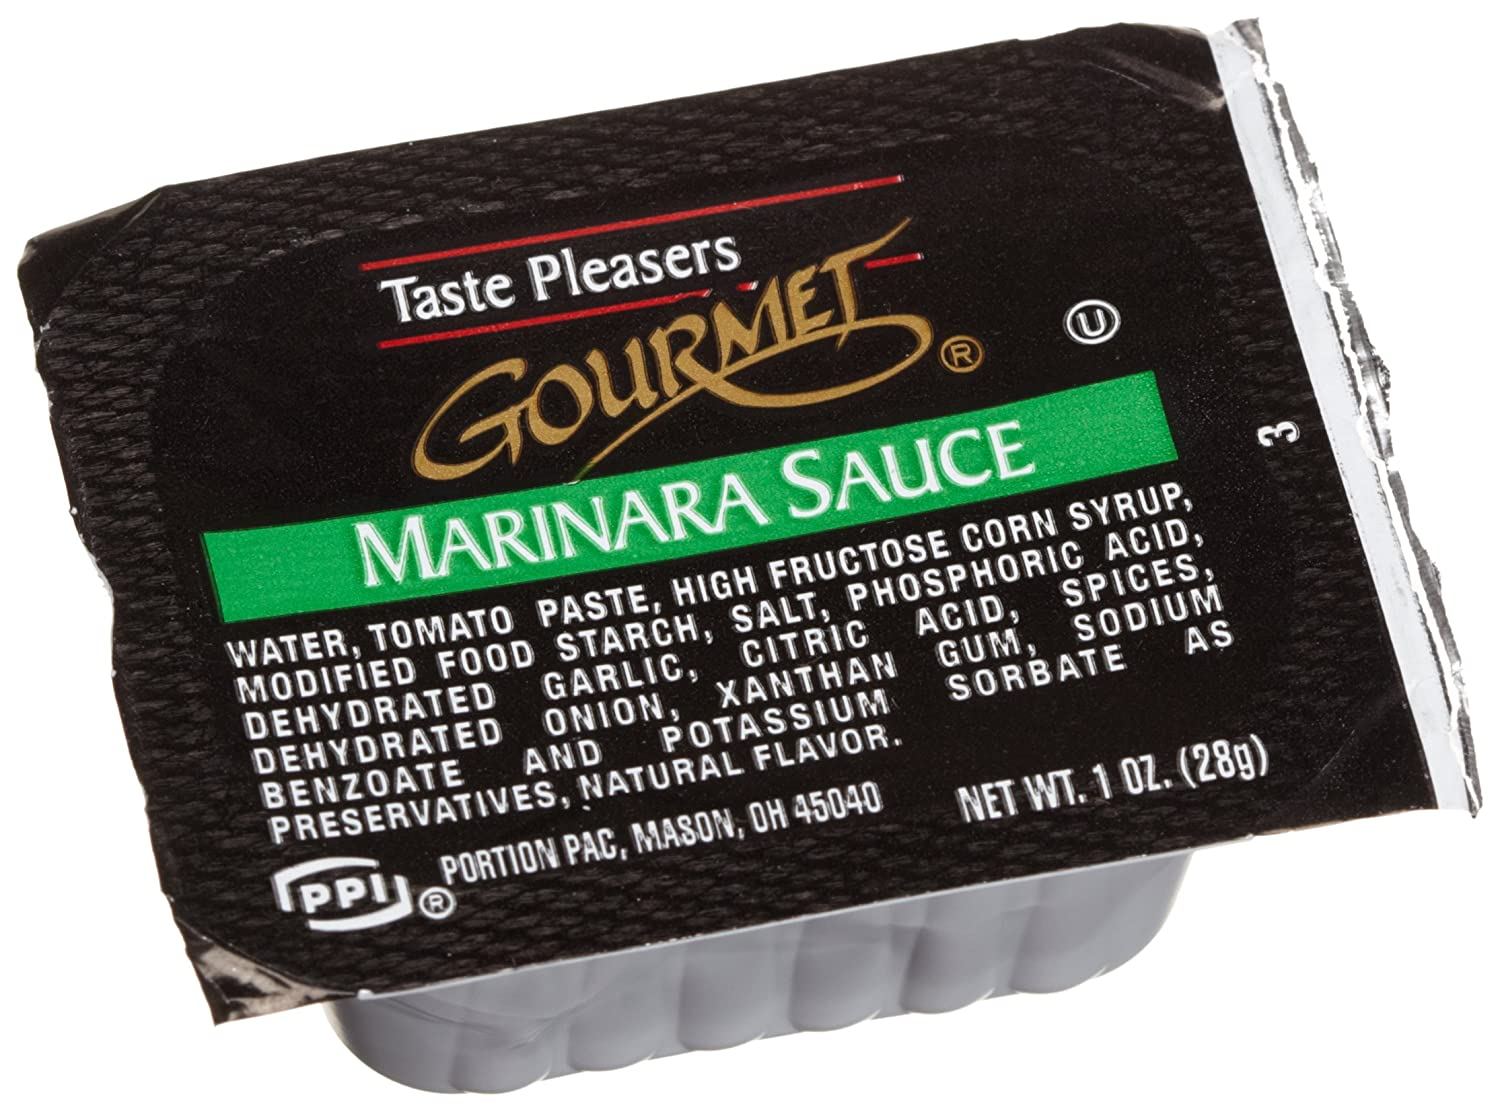 Taste Pleasers Gourmet Marinara Sauce,1-Ounce Cups (Pack of 100) glucose powder 500 grams of creatine supplements tribulus adjust taste movement branched arginine glucosamine good partner